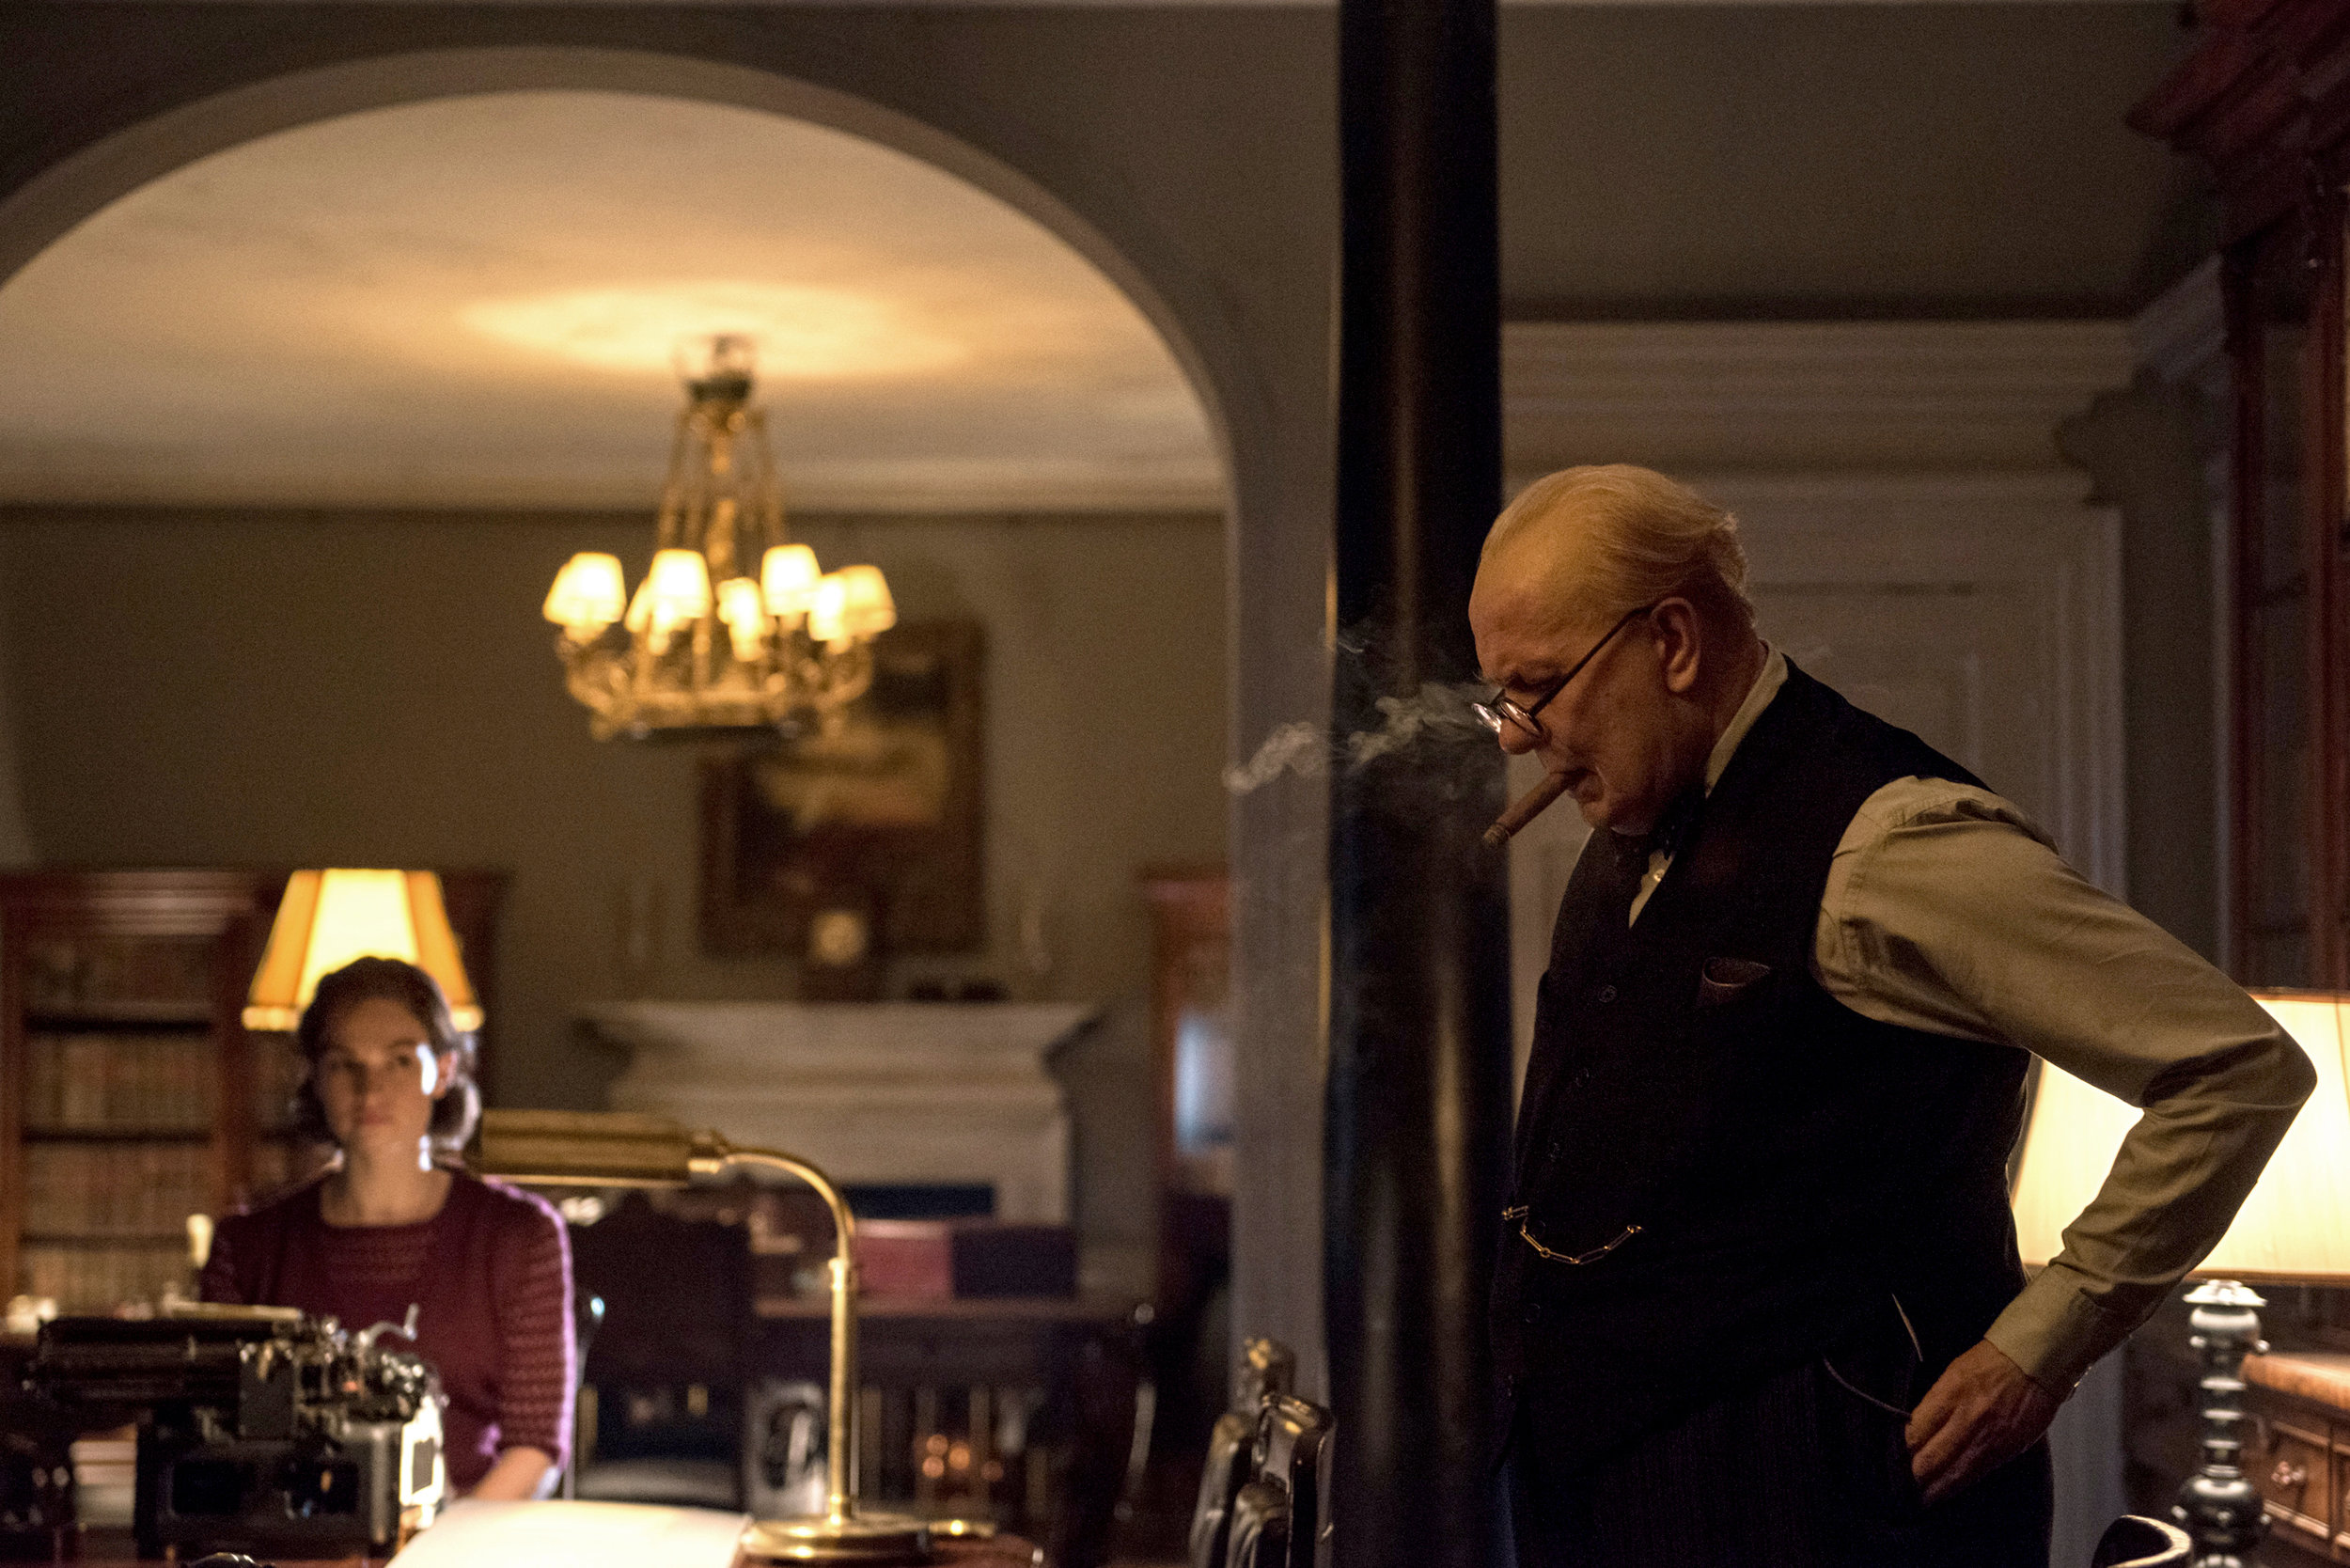 darkest-hour-gary-oldman-lily-james.jpg